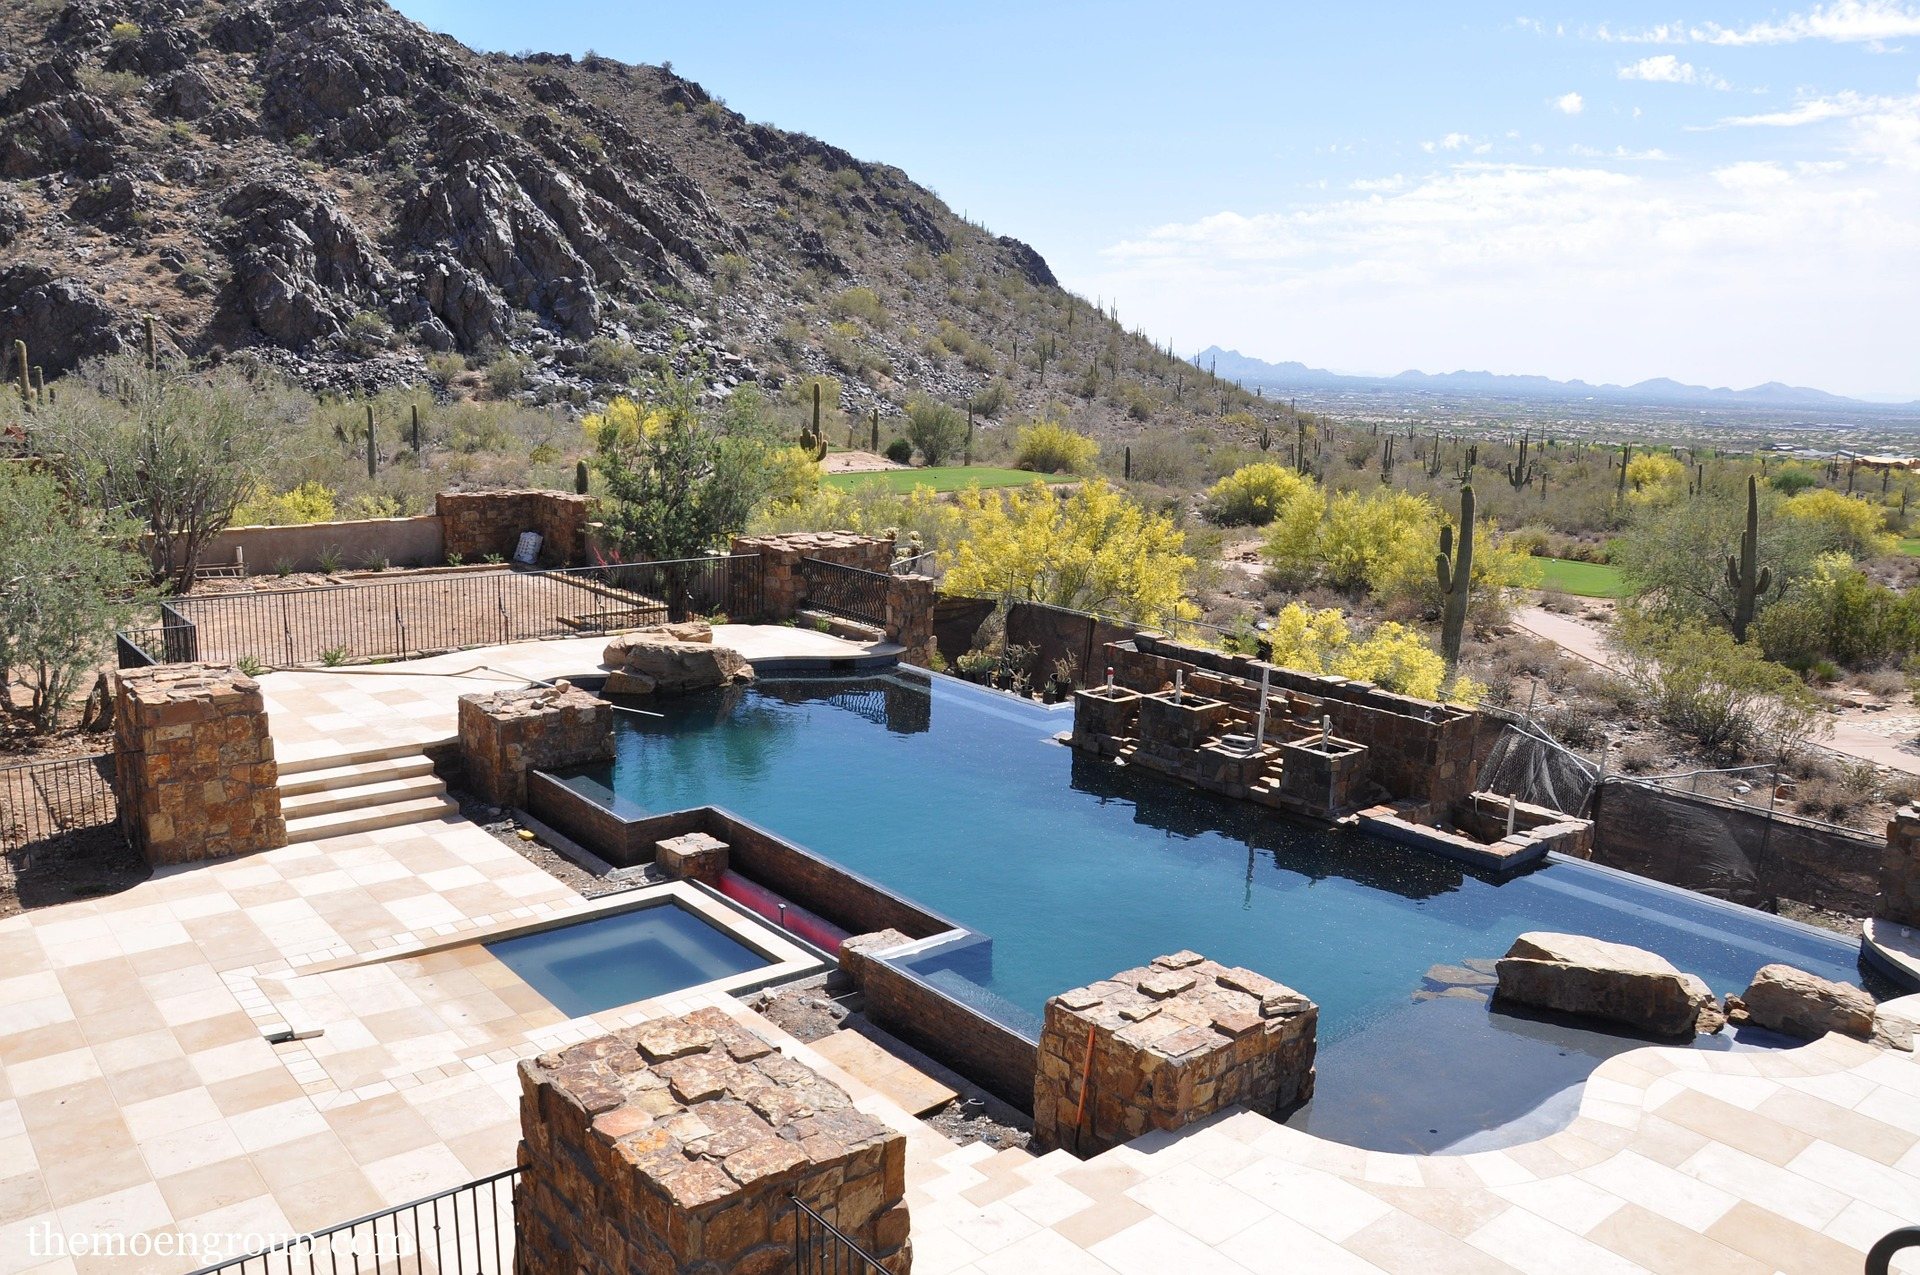 Pool Repair Arizona